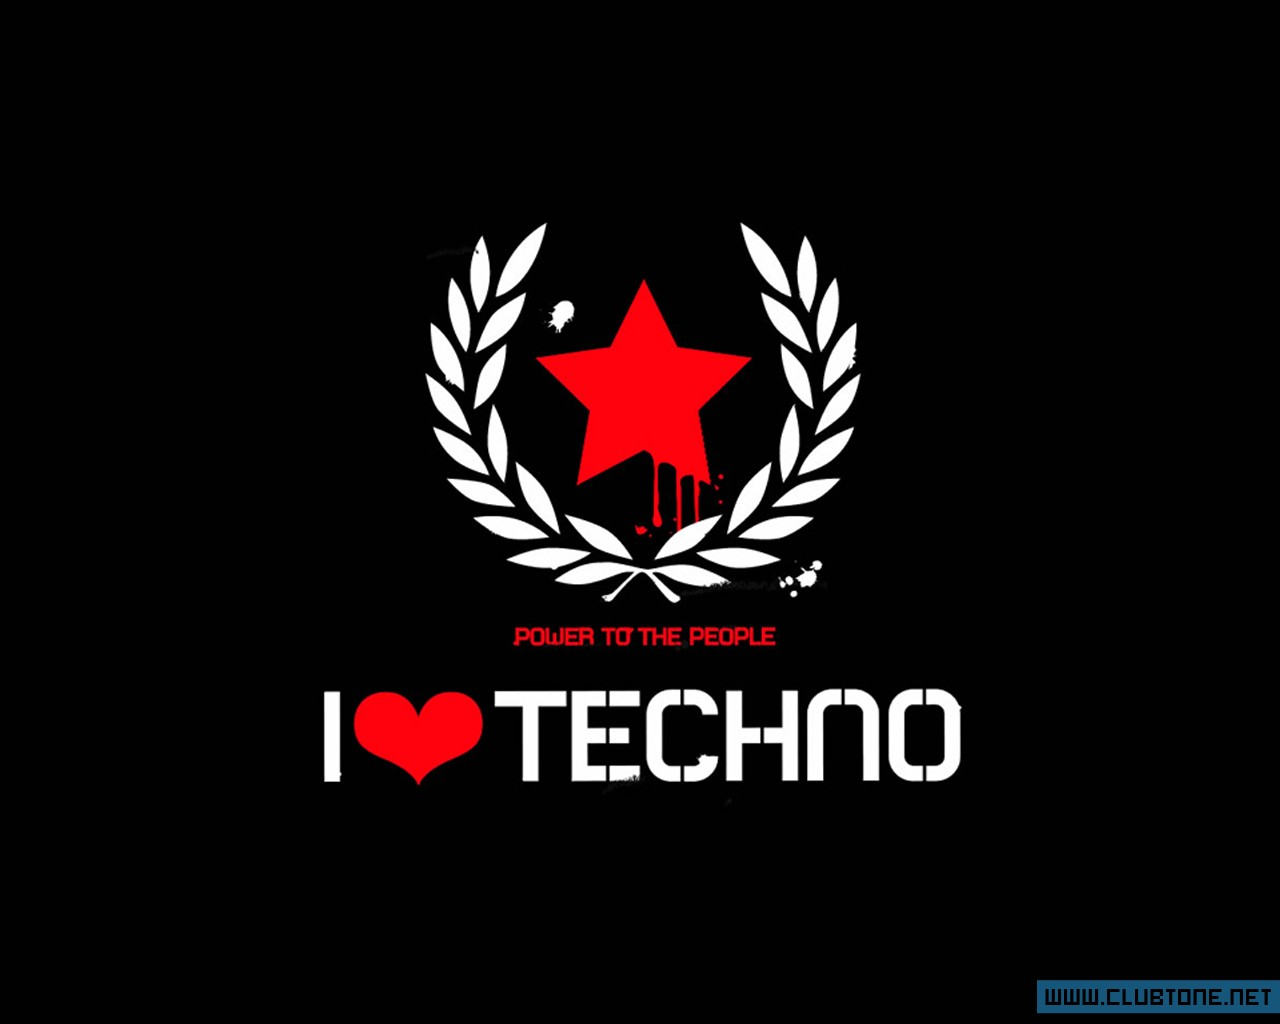 I LOVE TECHNO, звезда, техно, power of people